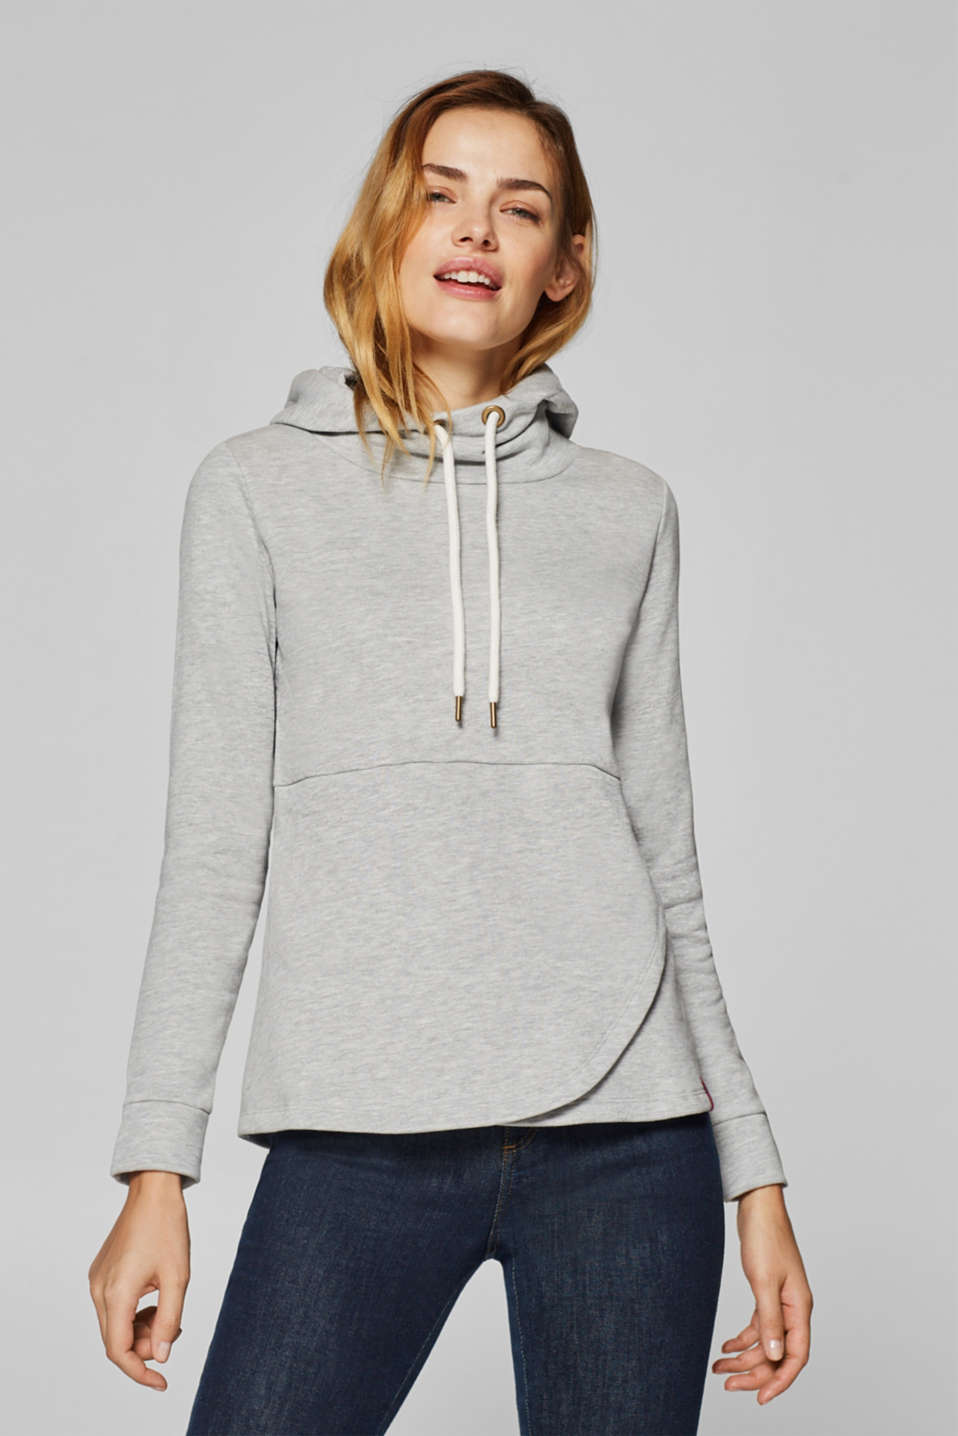 Esprit - Sweatshirt mit Kapuze in Wickel-Optik